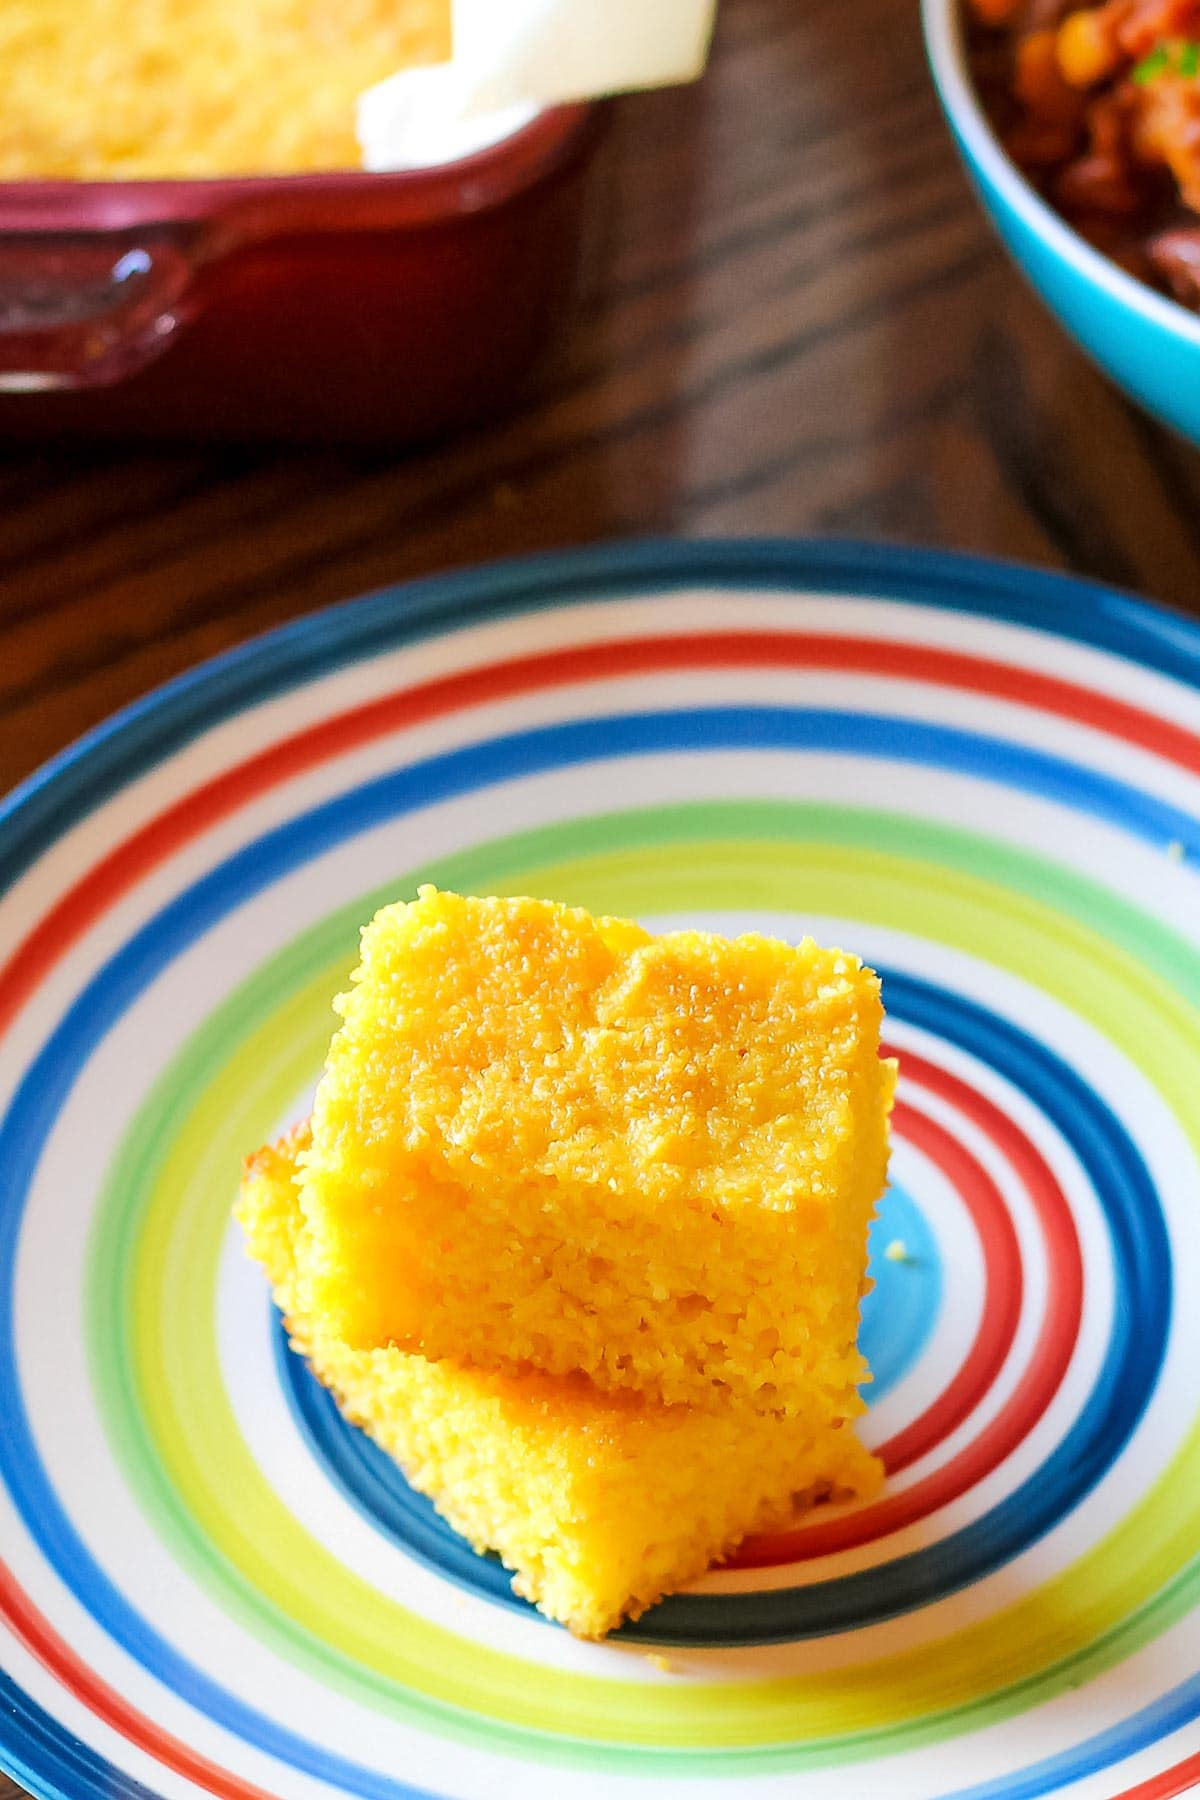 Pieces of dairy free cornbread, with baking pan and bowl of chili in background